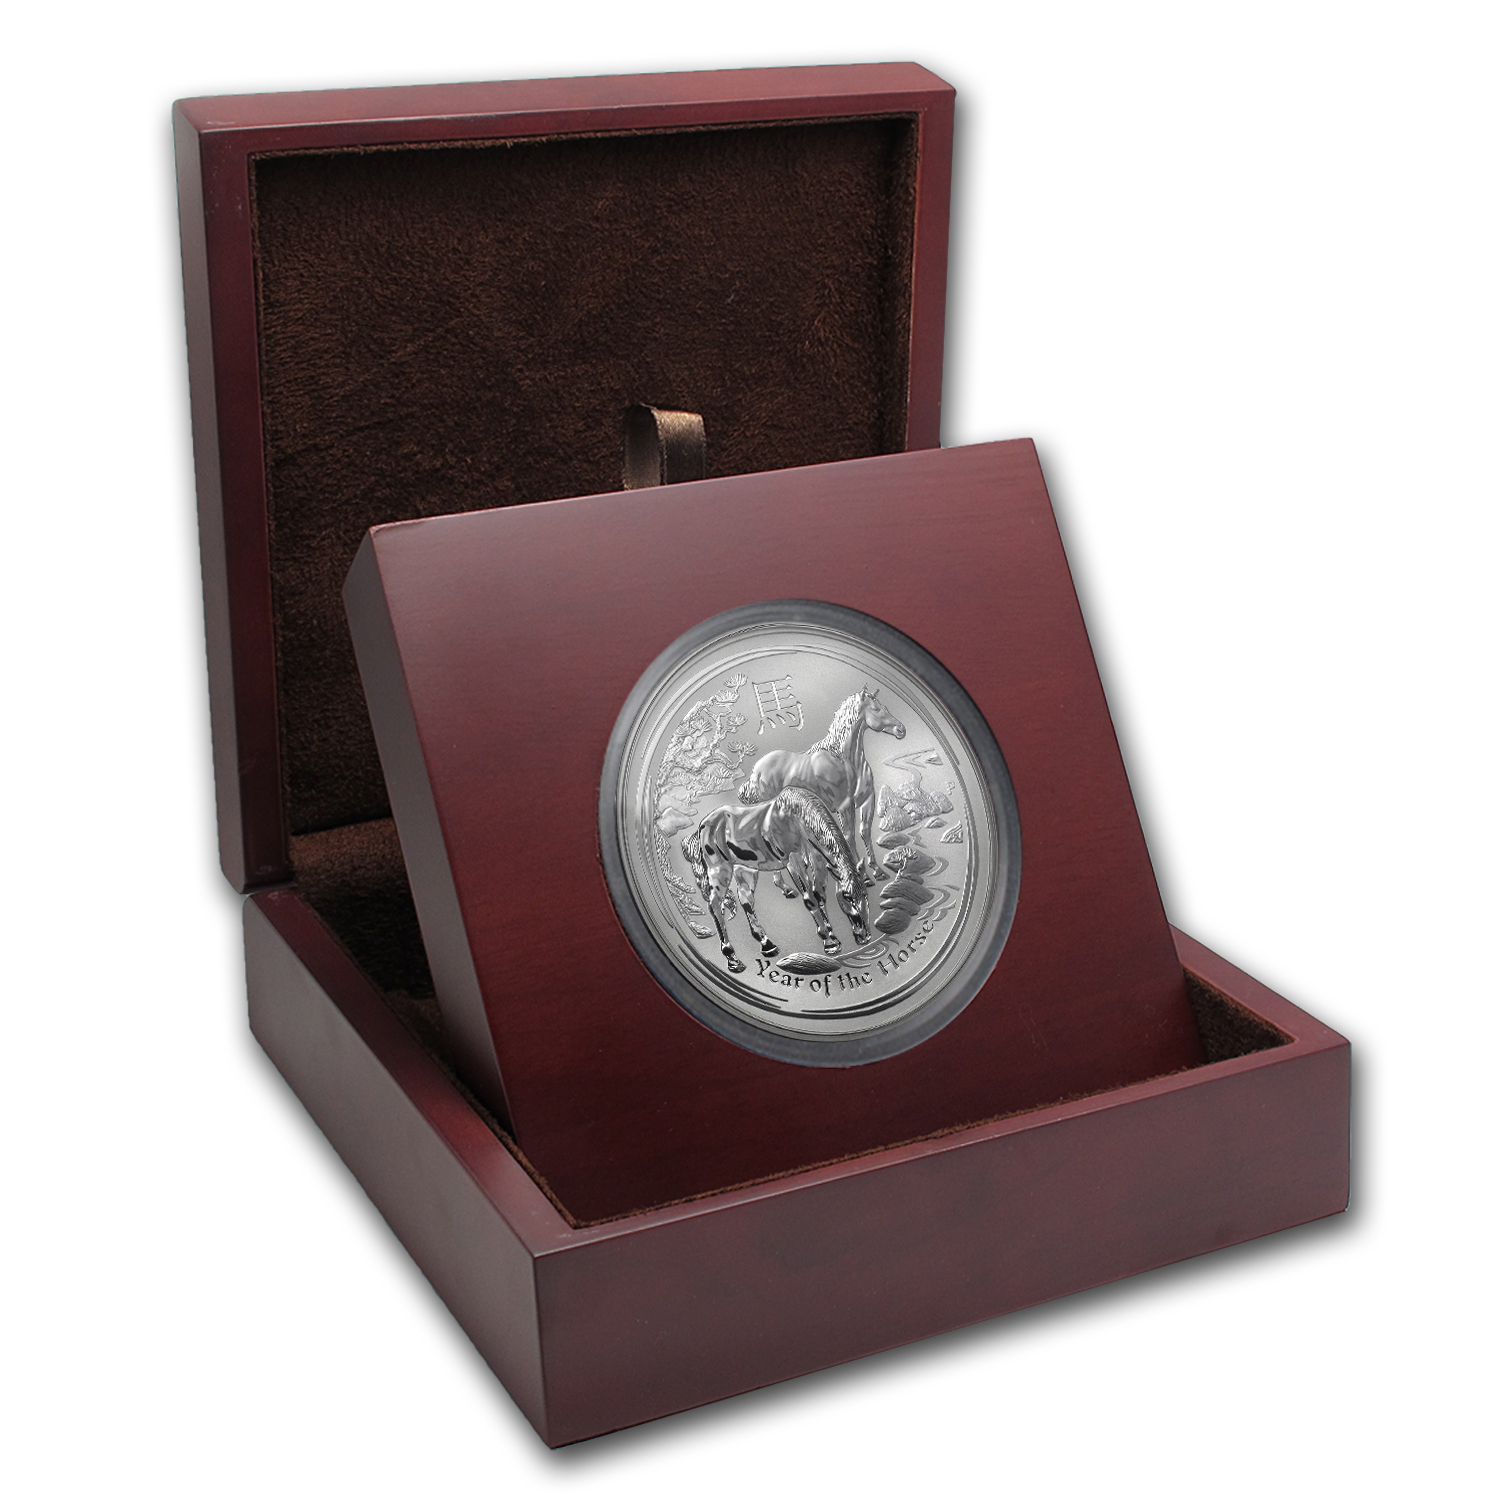 APMEX Wood Gift Box - 10 oz Perth Mint Silver Coin Series 2